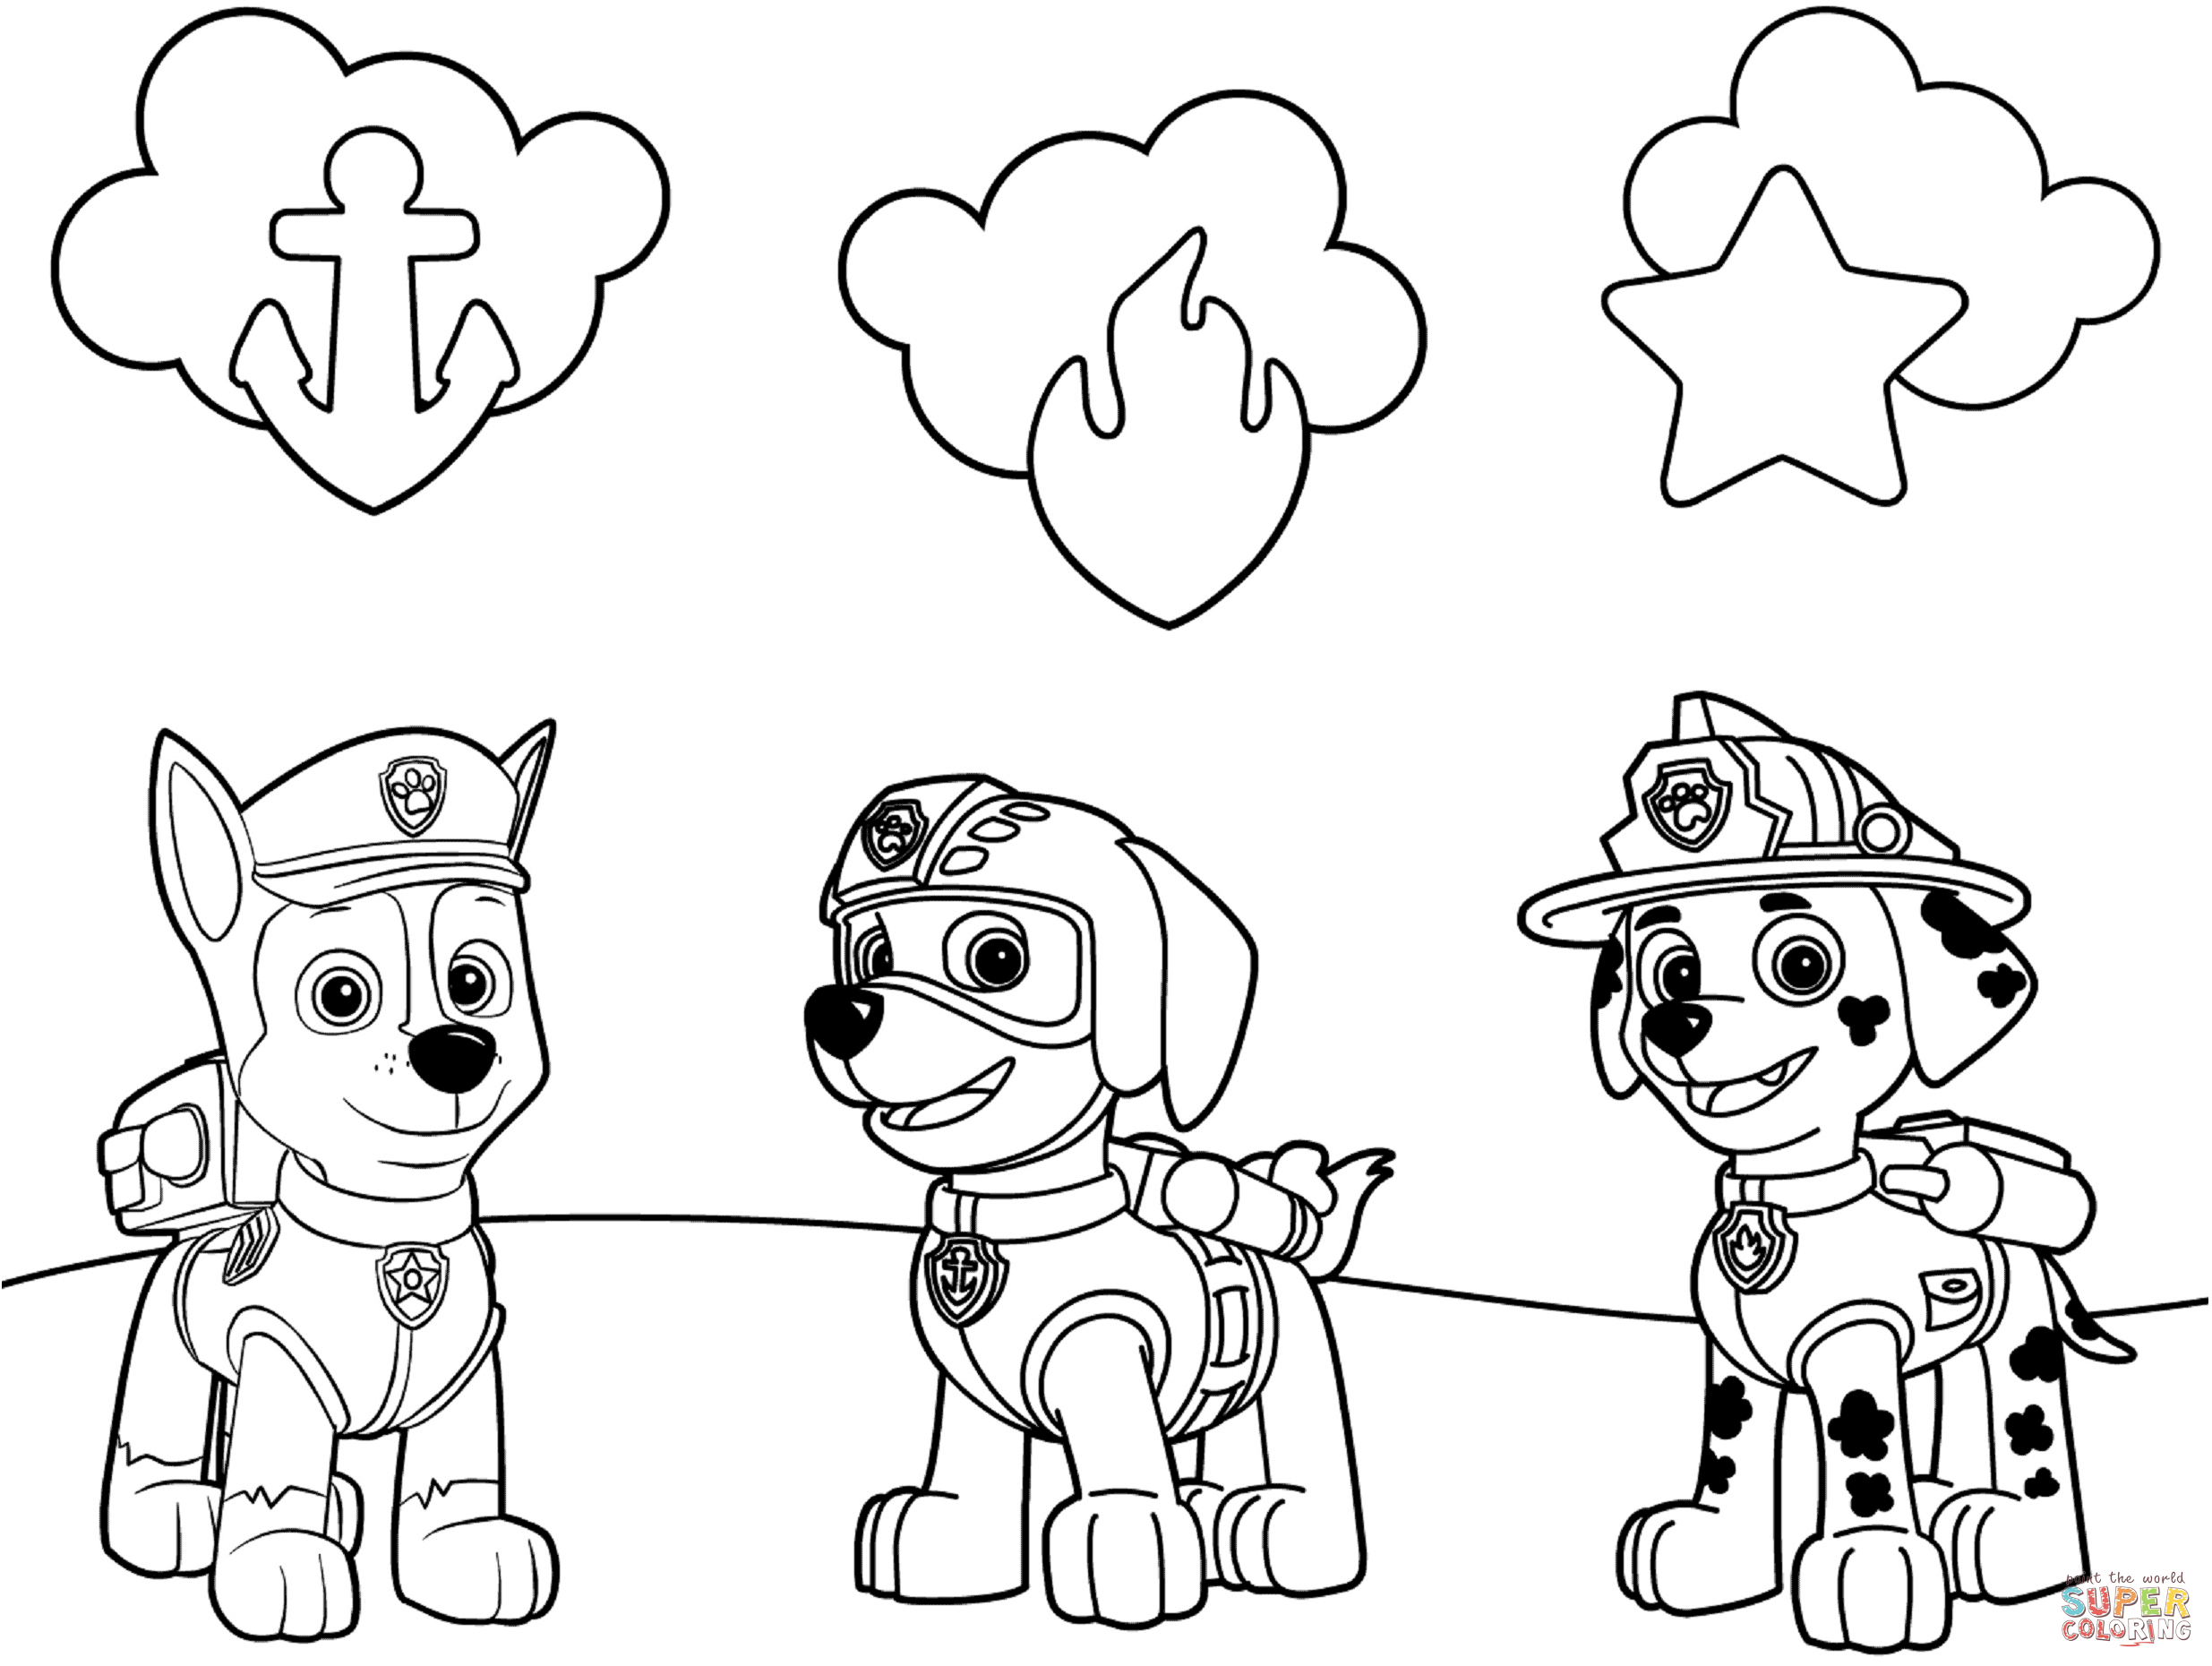 paw patrol jumbo coloring book paw patrol bilder ausmalen sky coloring pages for kids book paw jumbo coloring patrol